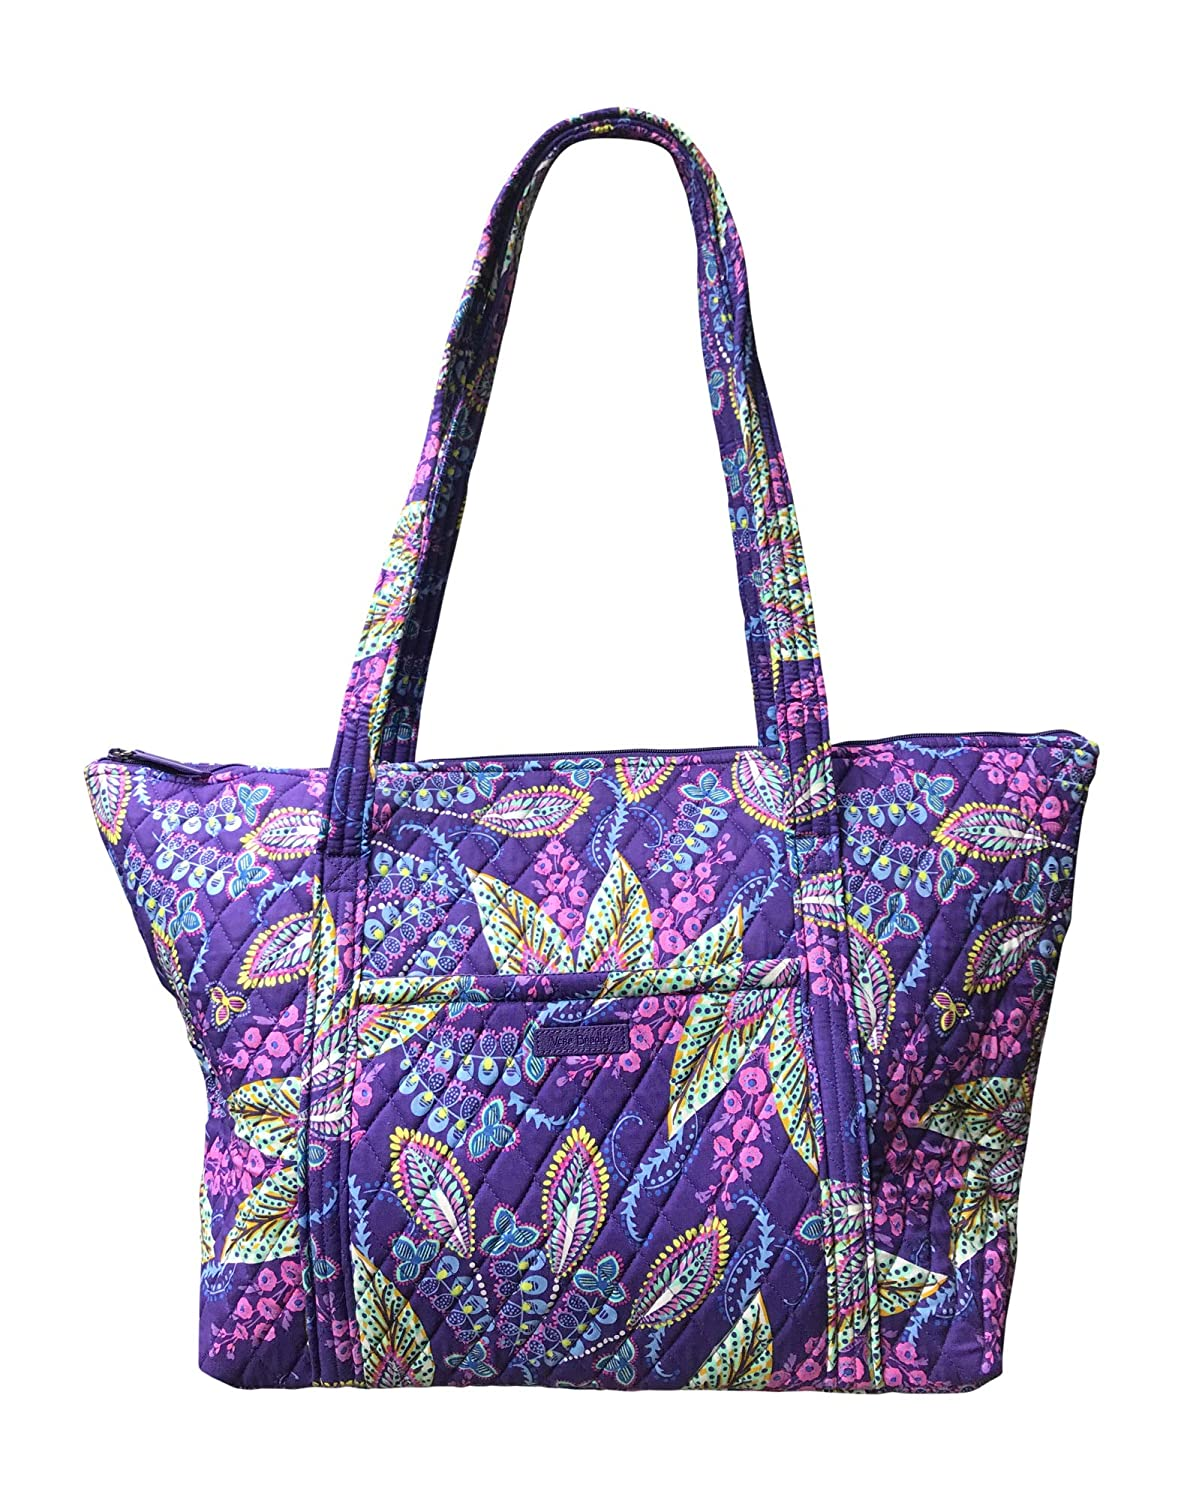 69a1066489 Amazon.com  Vera Bradley Miller Travel Tote Bag